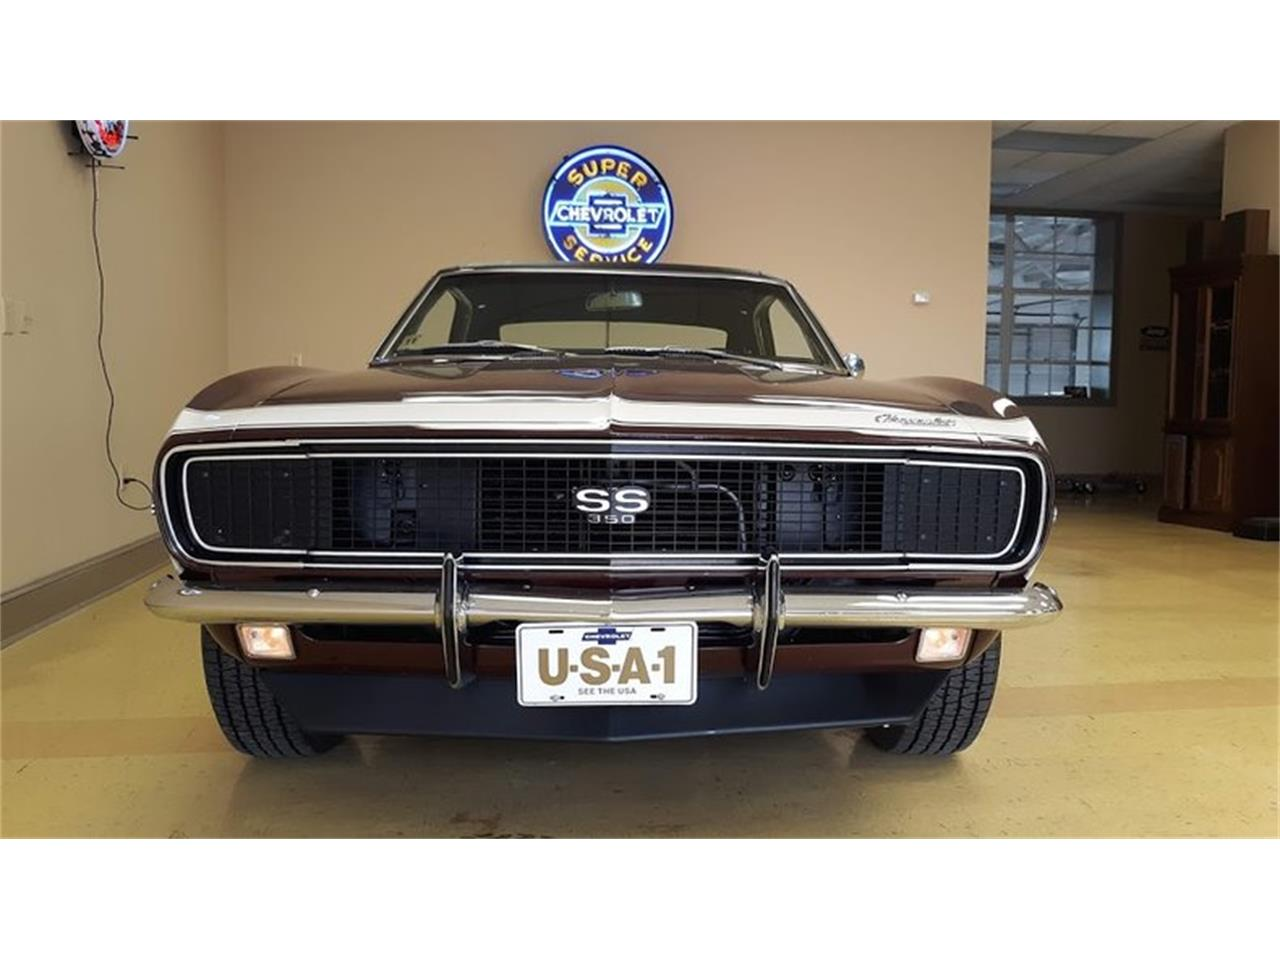 Large Picture of Classic '67 Camaro located in North Carolina Auction Vehicle Offered by GAA Classic Cars Auctions - PAWA